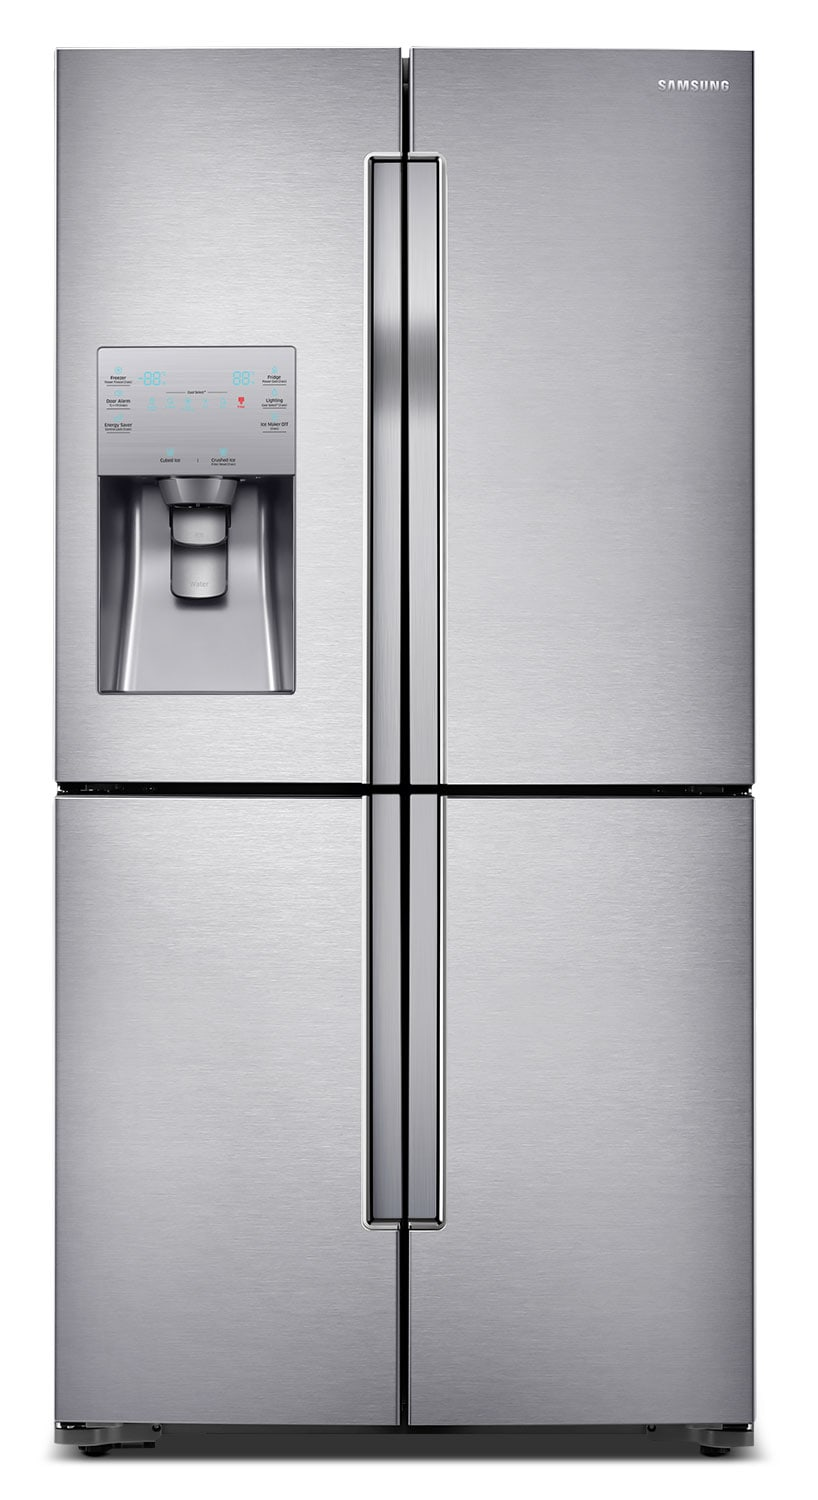 Refrigerators and Freezers - Samsung Stainless Steel French-Door Refrigerator (22.5 Cu. Ft.) - RF23J9011SR